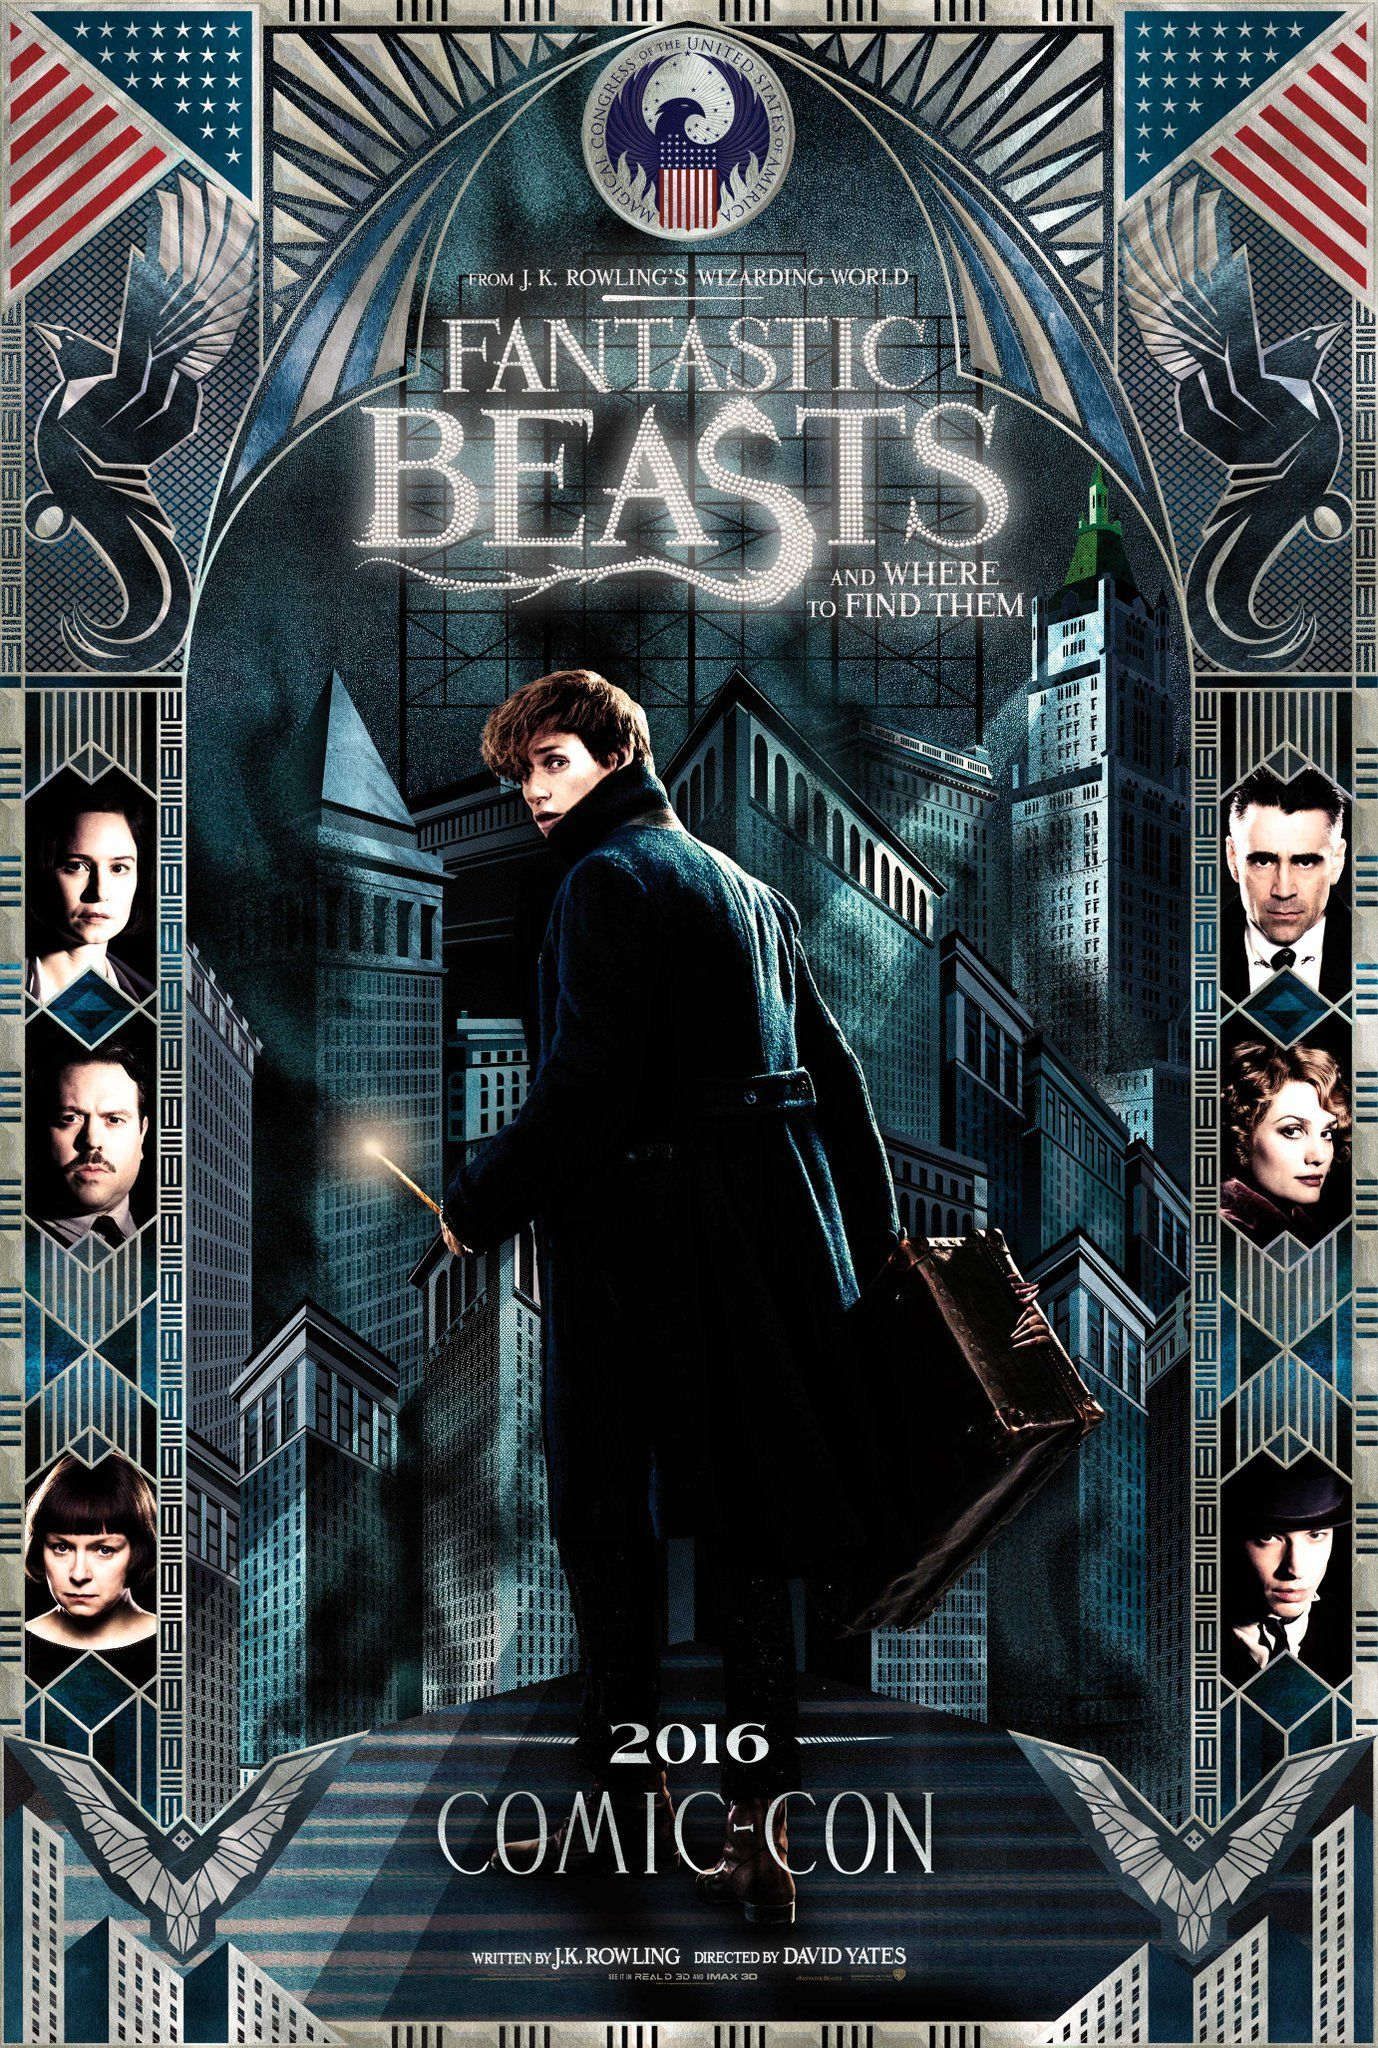 A New Poster For The Upcoming Harry Potter Spinoff Gives A